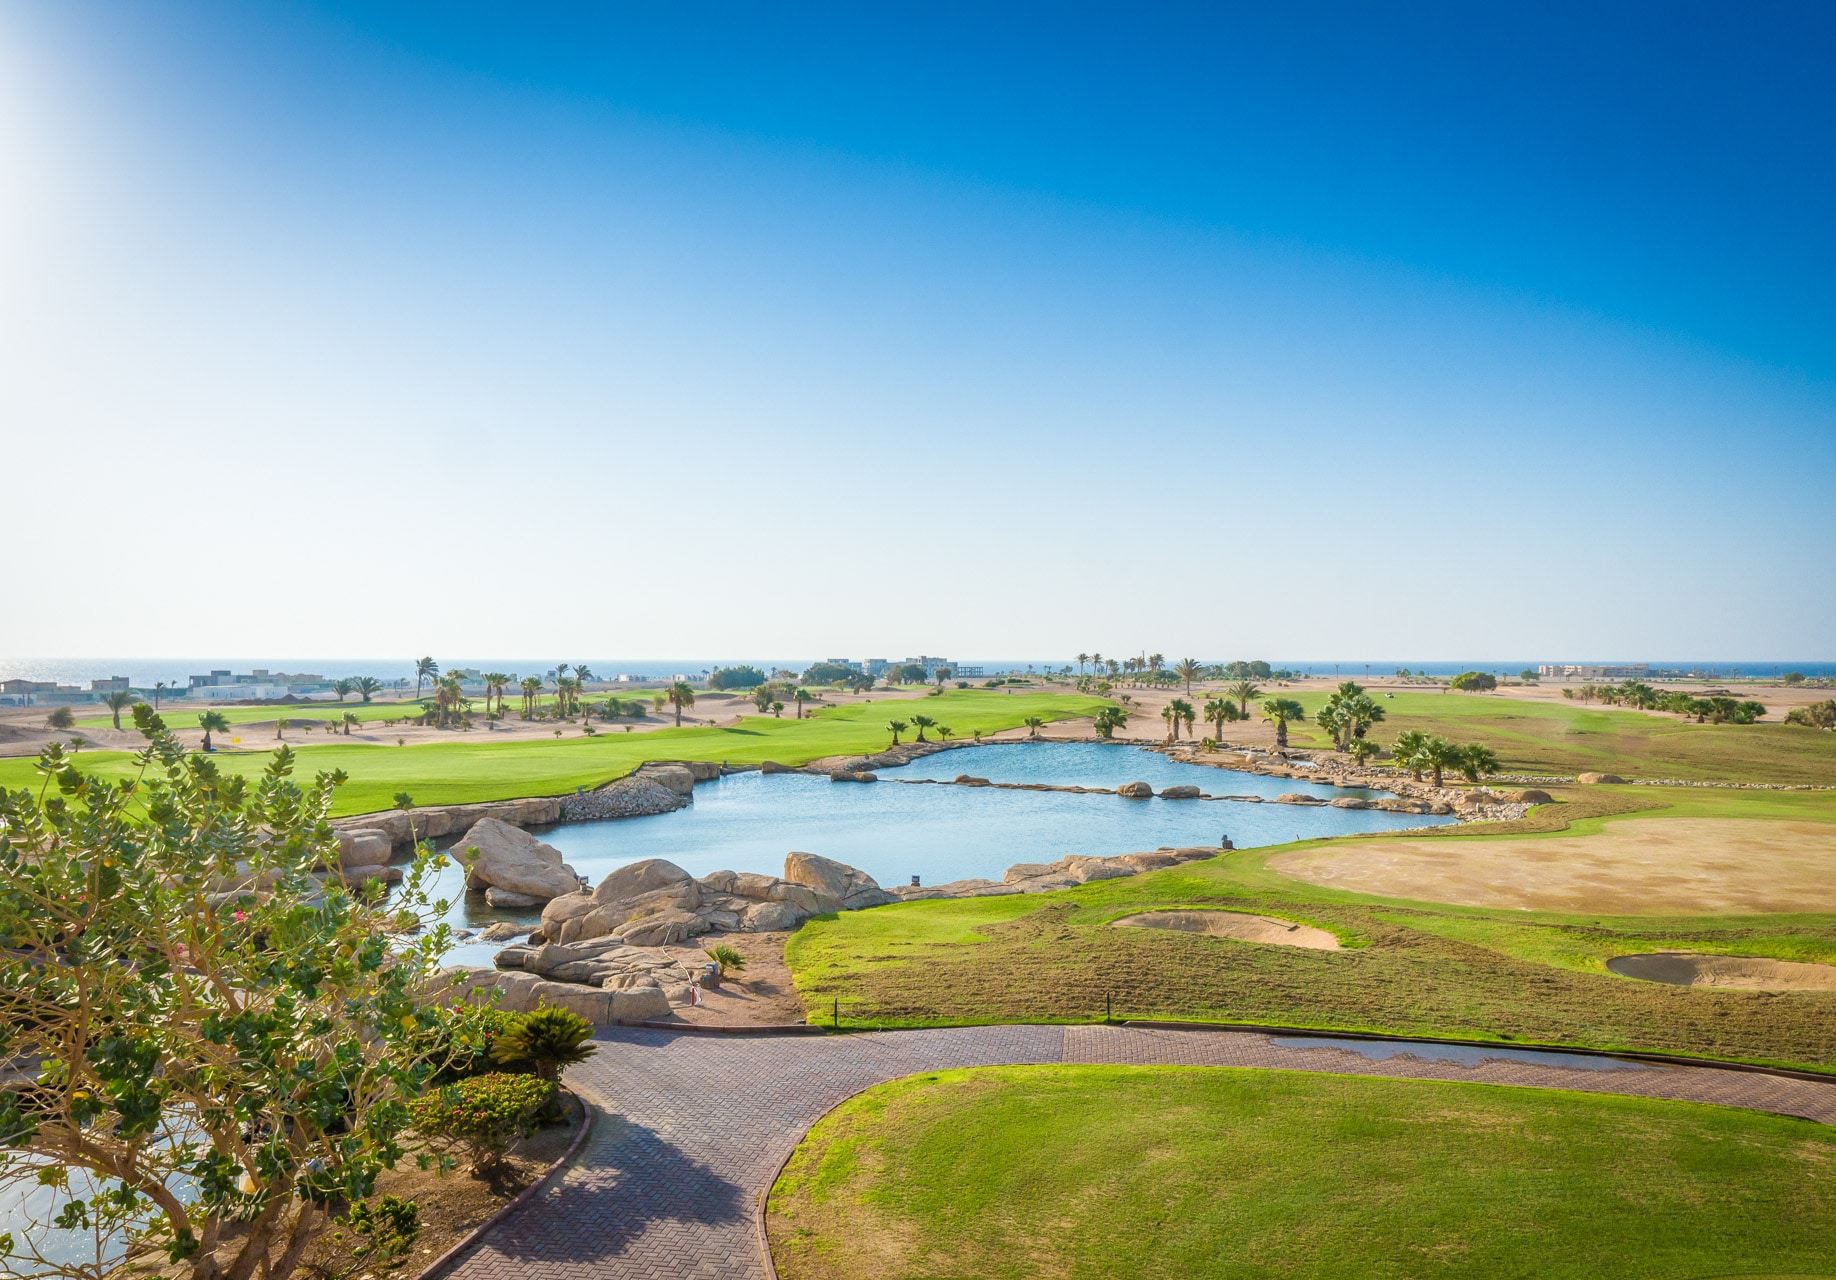 The-Cascades-Golf-Soma-Bay-Aegypten-17